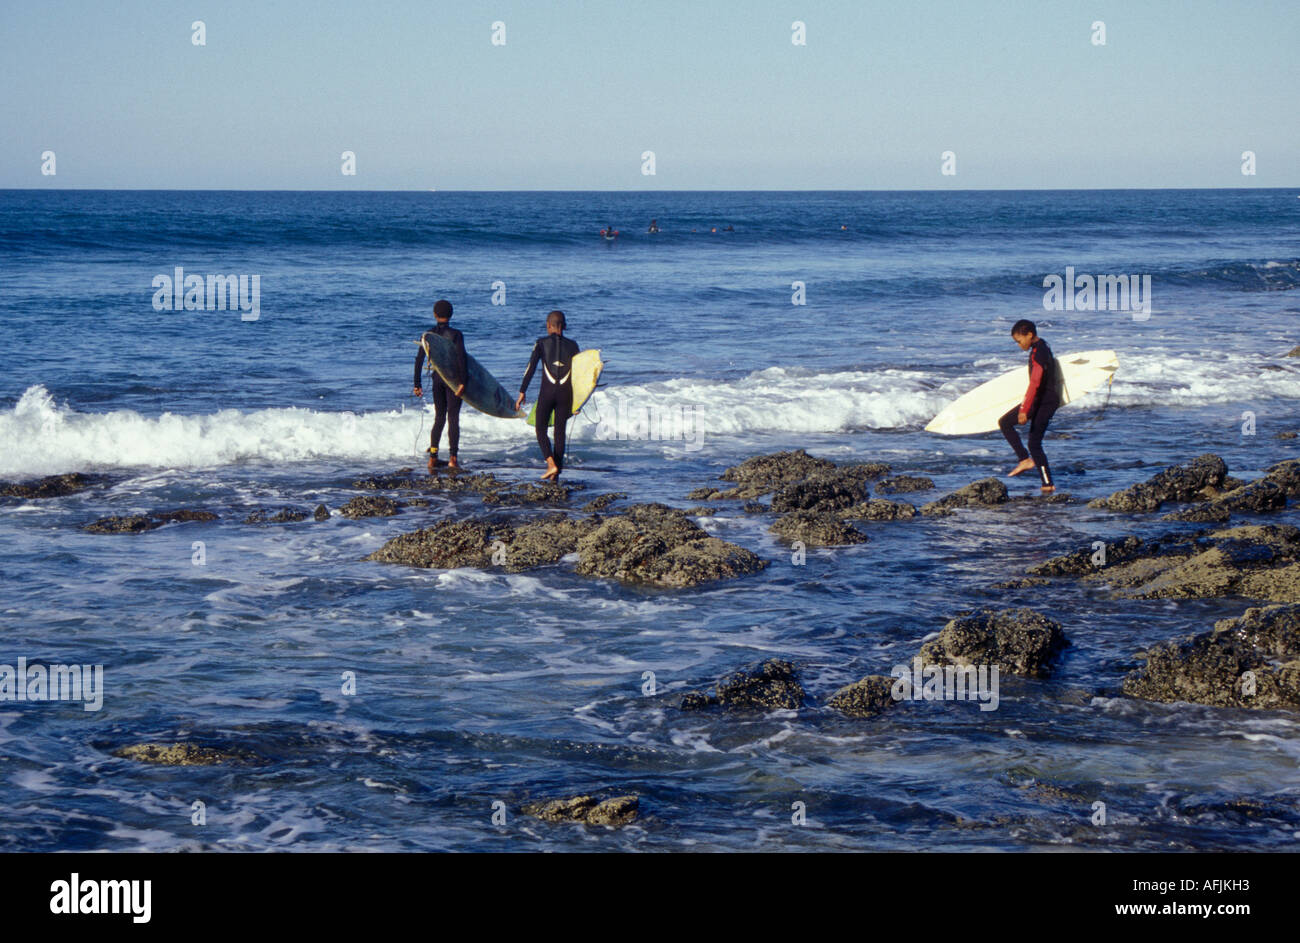 A new generation of black surfers hit Jeffreys Bay in South Africa - Stock Image